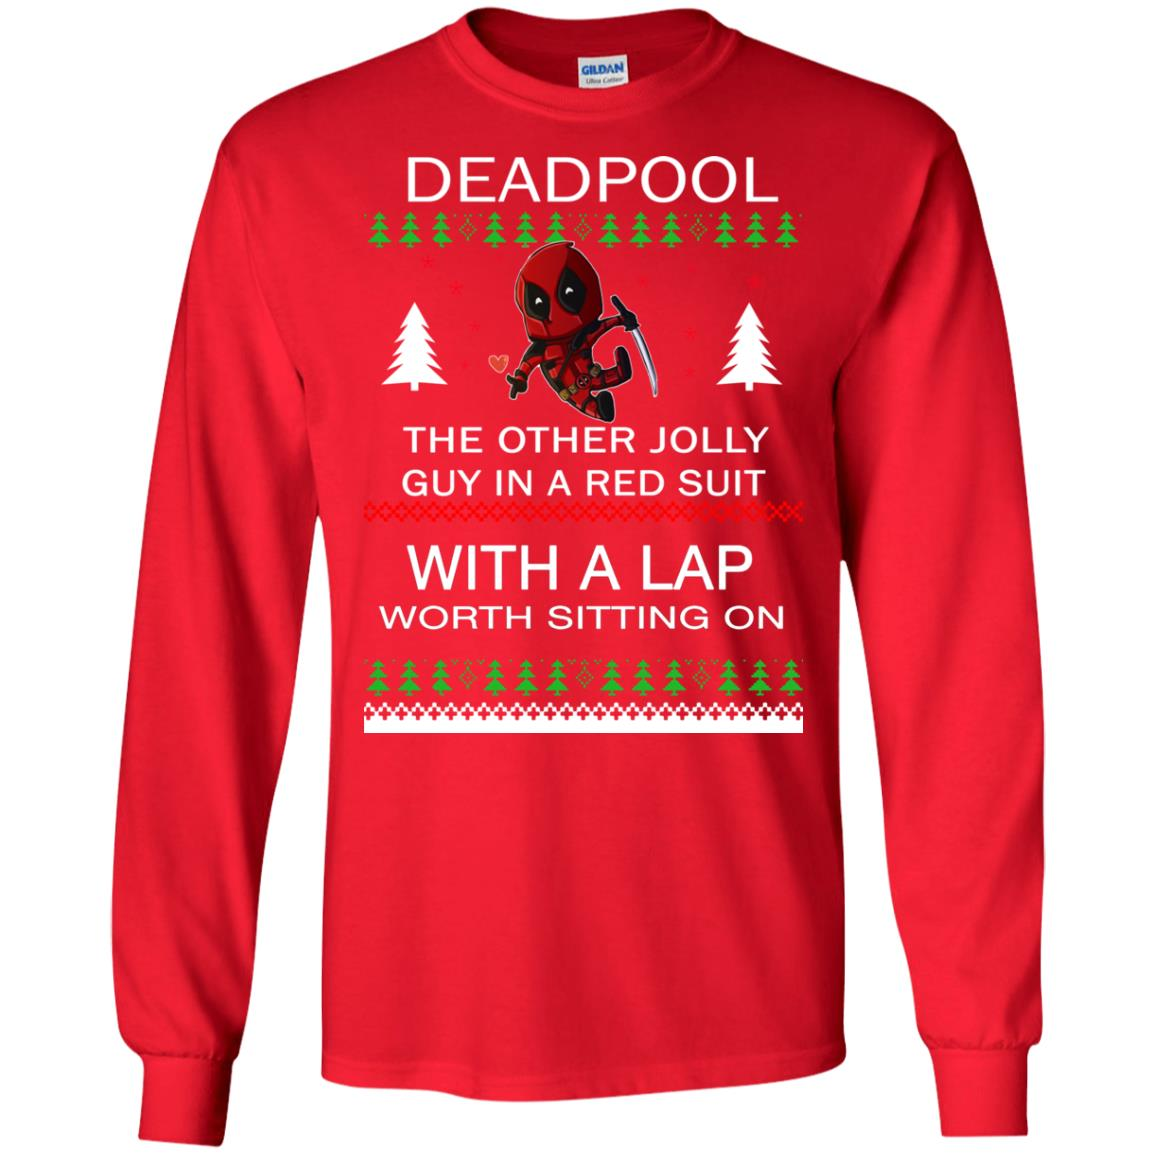 5e5ac847 Deadpool The only jolly guy in a red suit with a Lap Christmas Sweater,  Ugly Sweatshirts